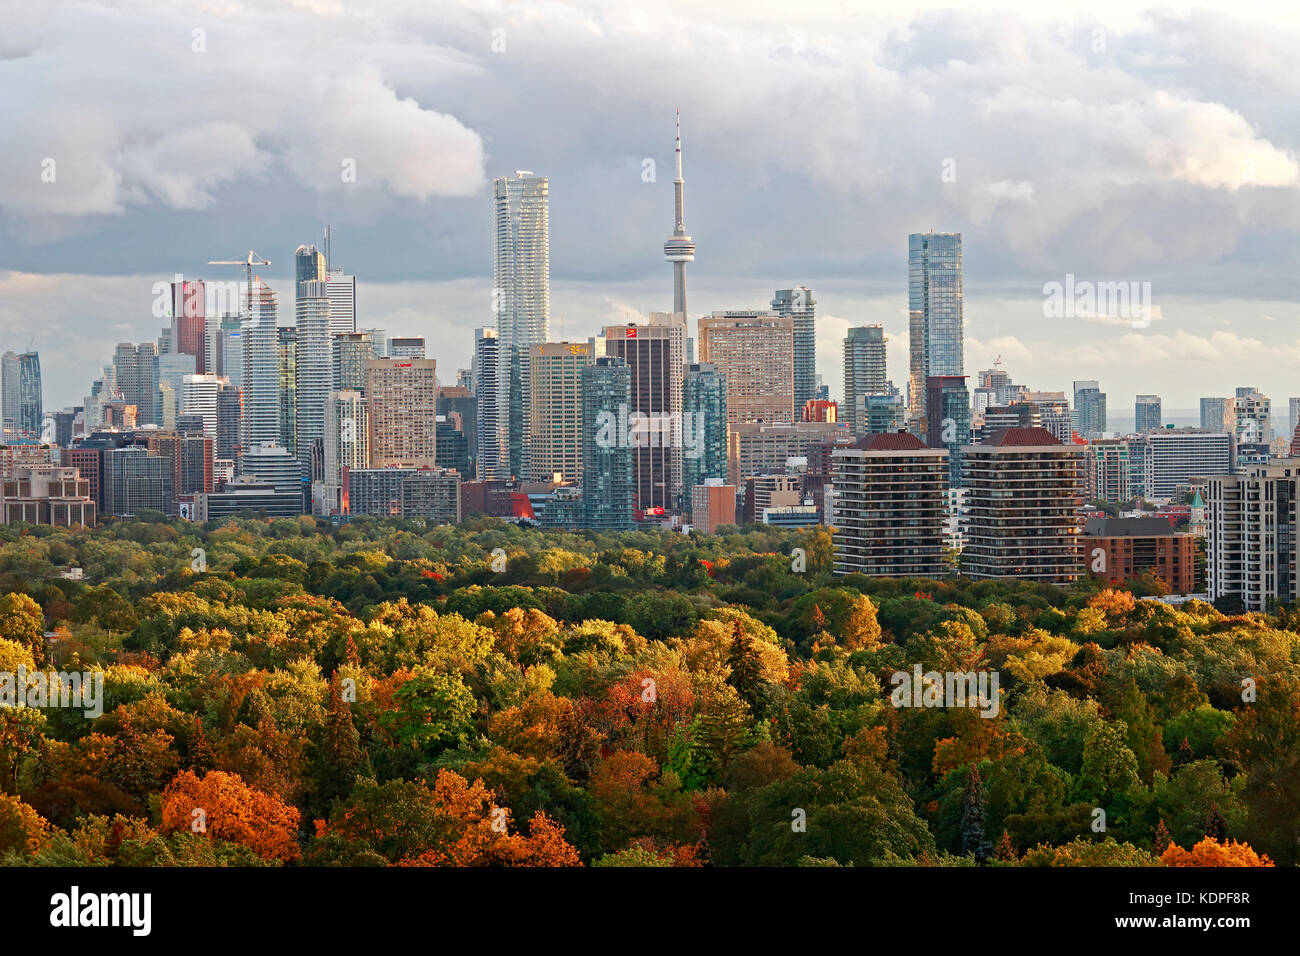 Toronto downtown and midtown skyline with brilliant fall colors lit by sunlight in late after between cold fronts - Stock Image